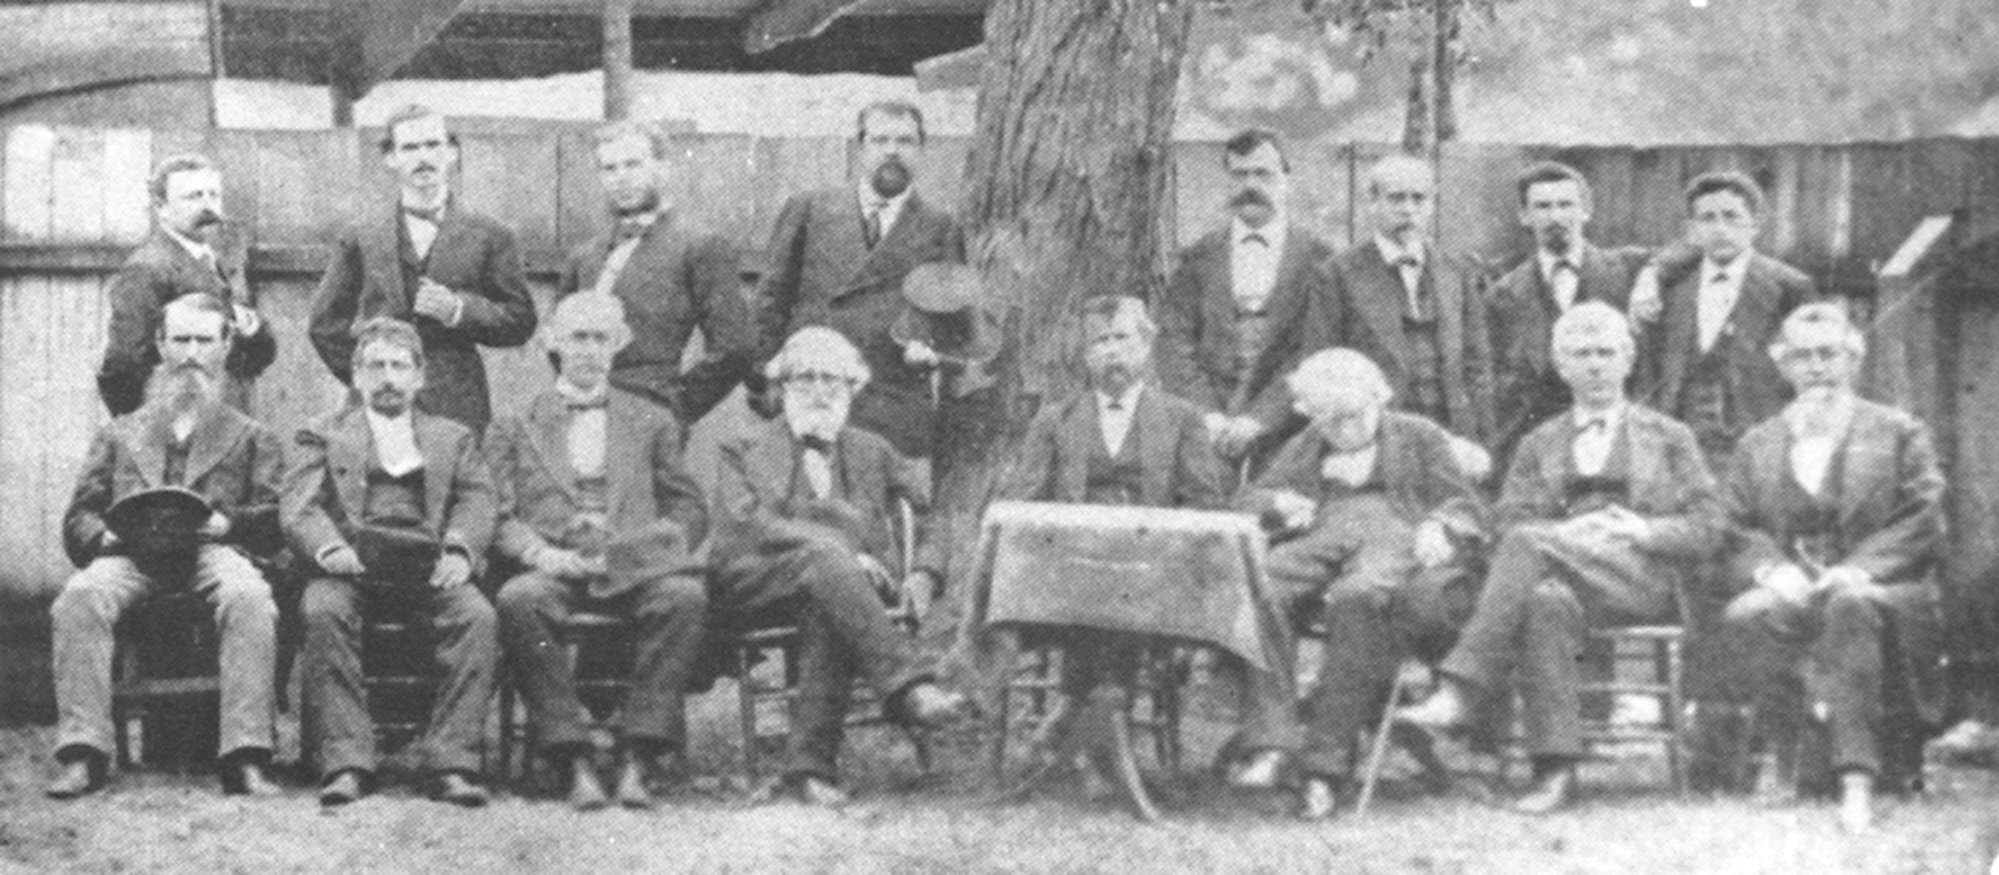 Sumter Bar of 1876 - This photograph was taken in the backyard of the law office of J.S.G. Richardson. Col. J. D. Blanding can be seen in the back row, second from right.